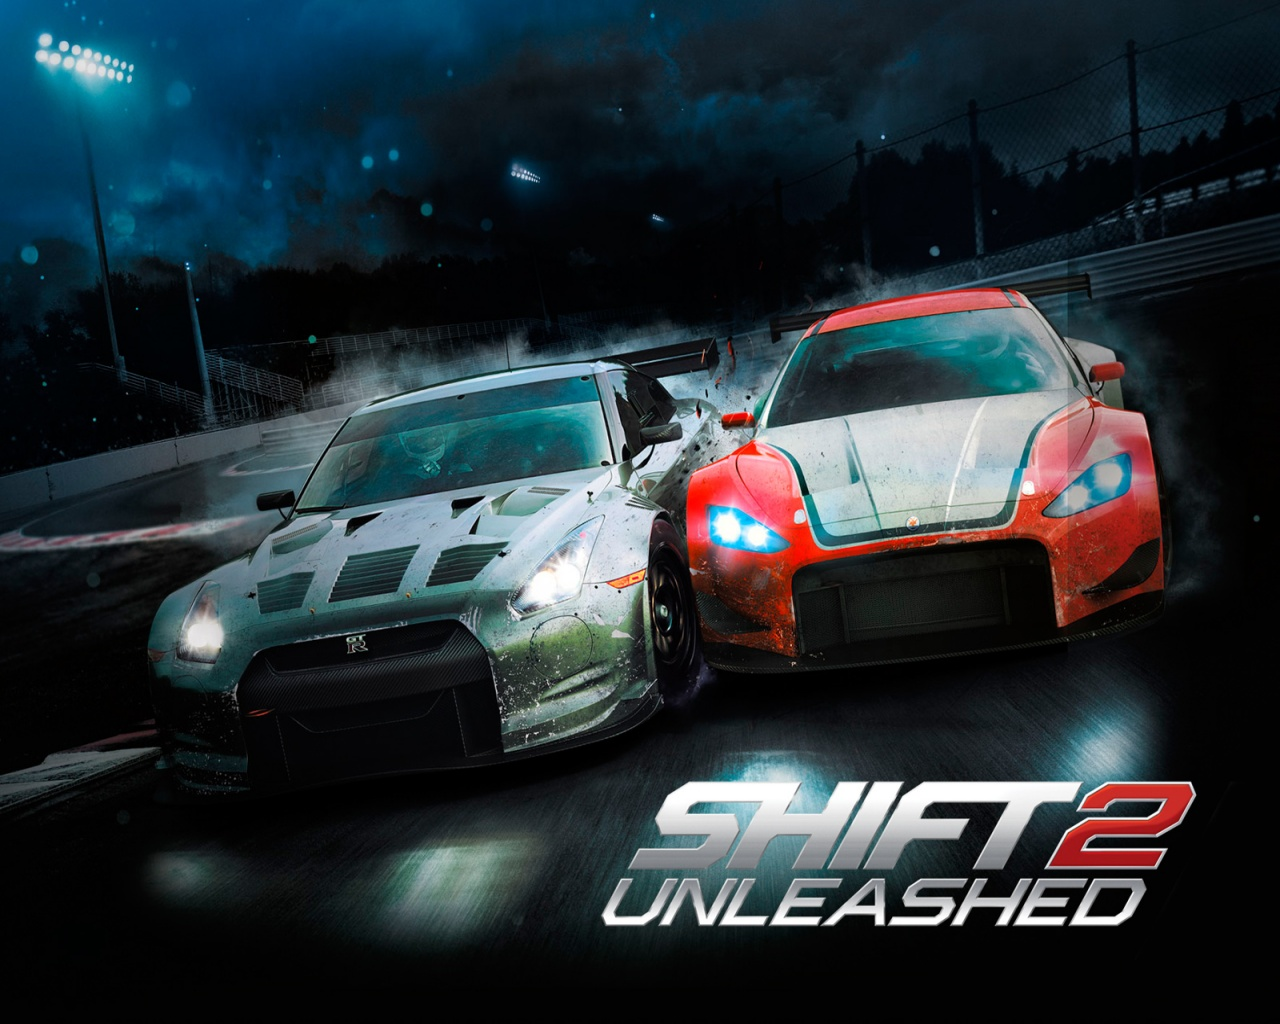 Nuevo Trailer de Need For Speed Shift 2 Unleashed